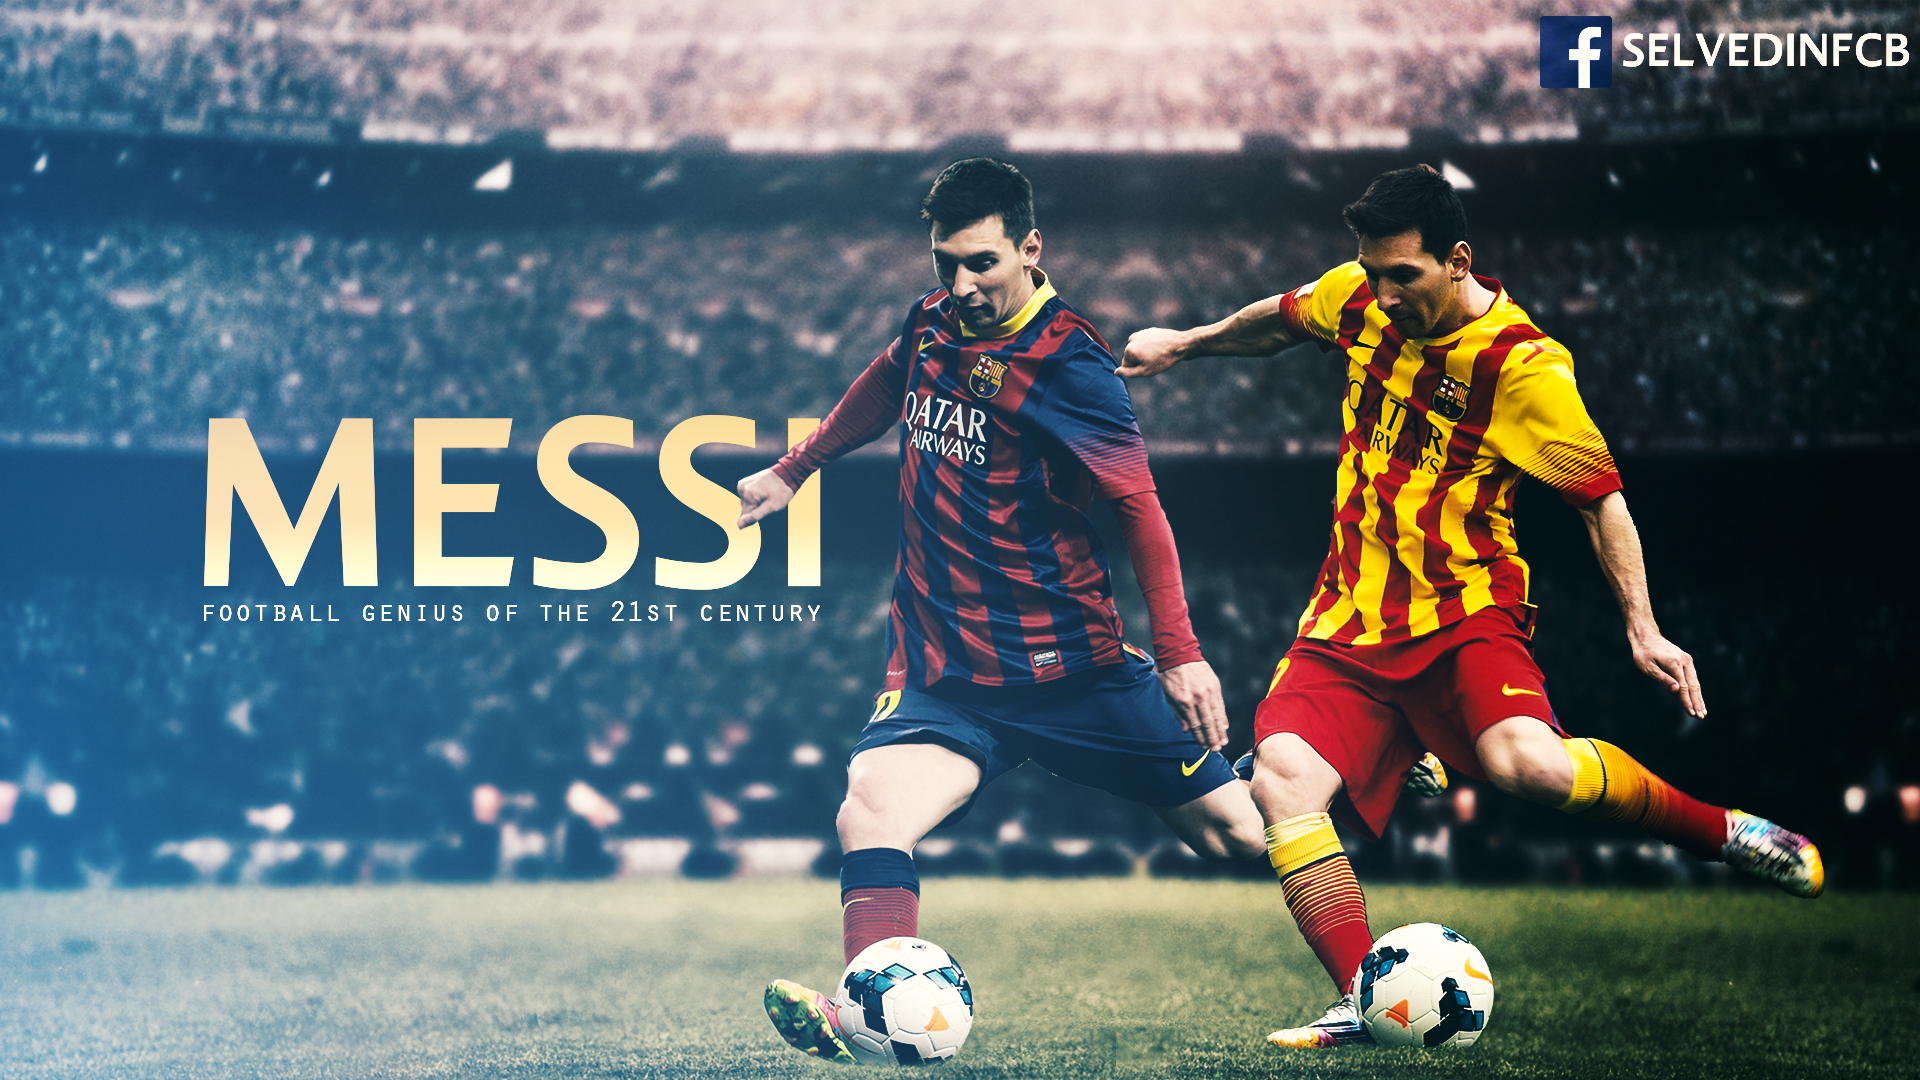 Lionel Messi 2014 Wallpaper HD by SelvedinFCB 1920x1080